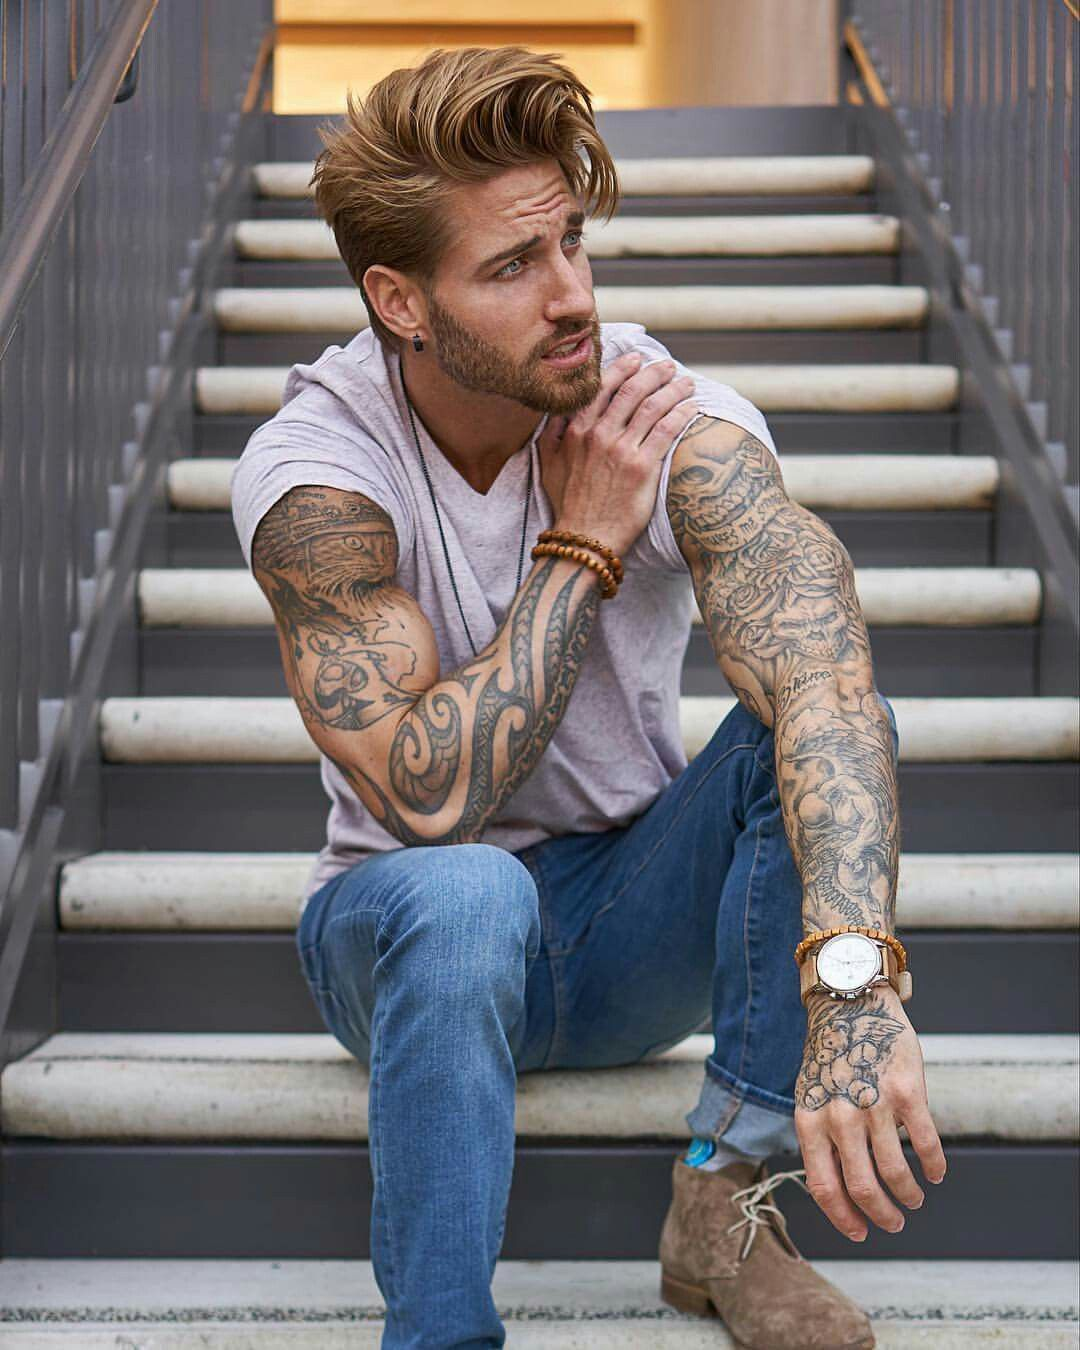 Platinum hair color boy pin by jo pollock on men with tattoos  pinterest  tattoo